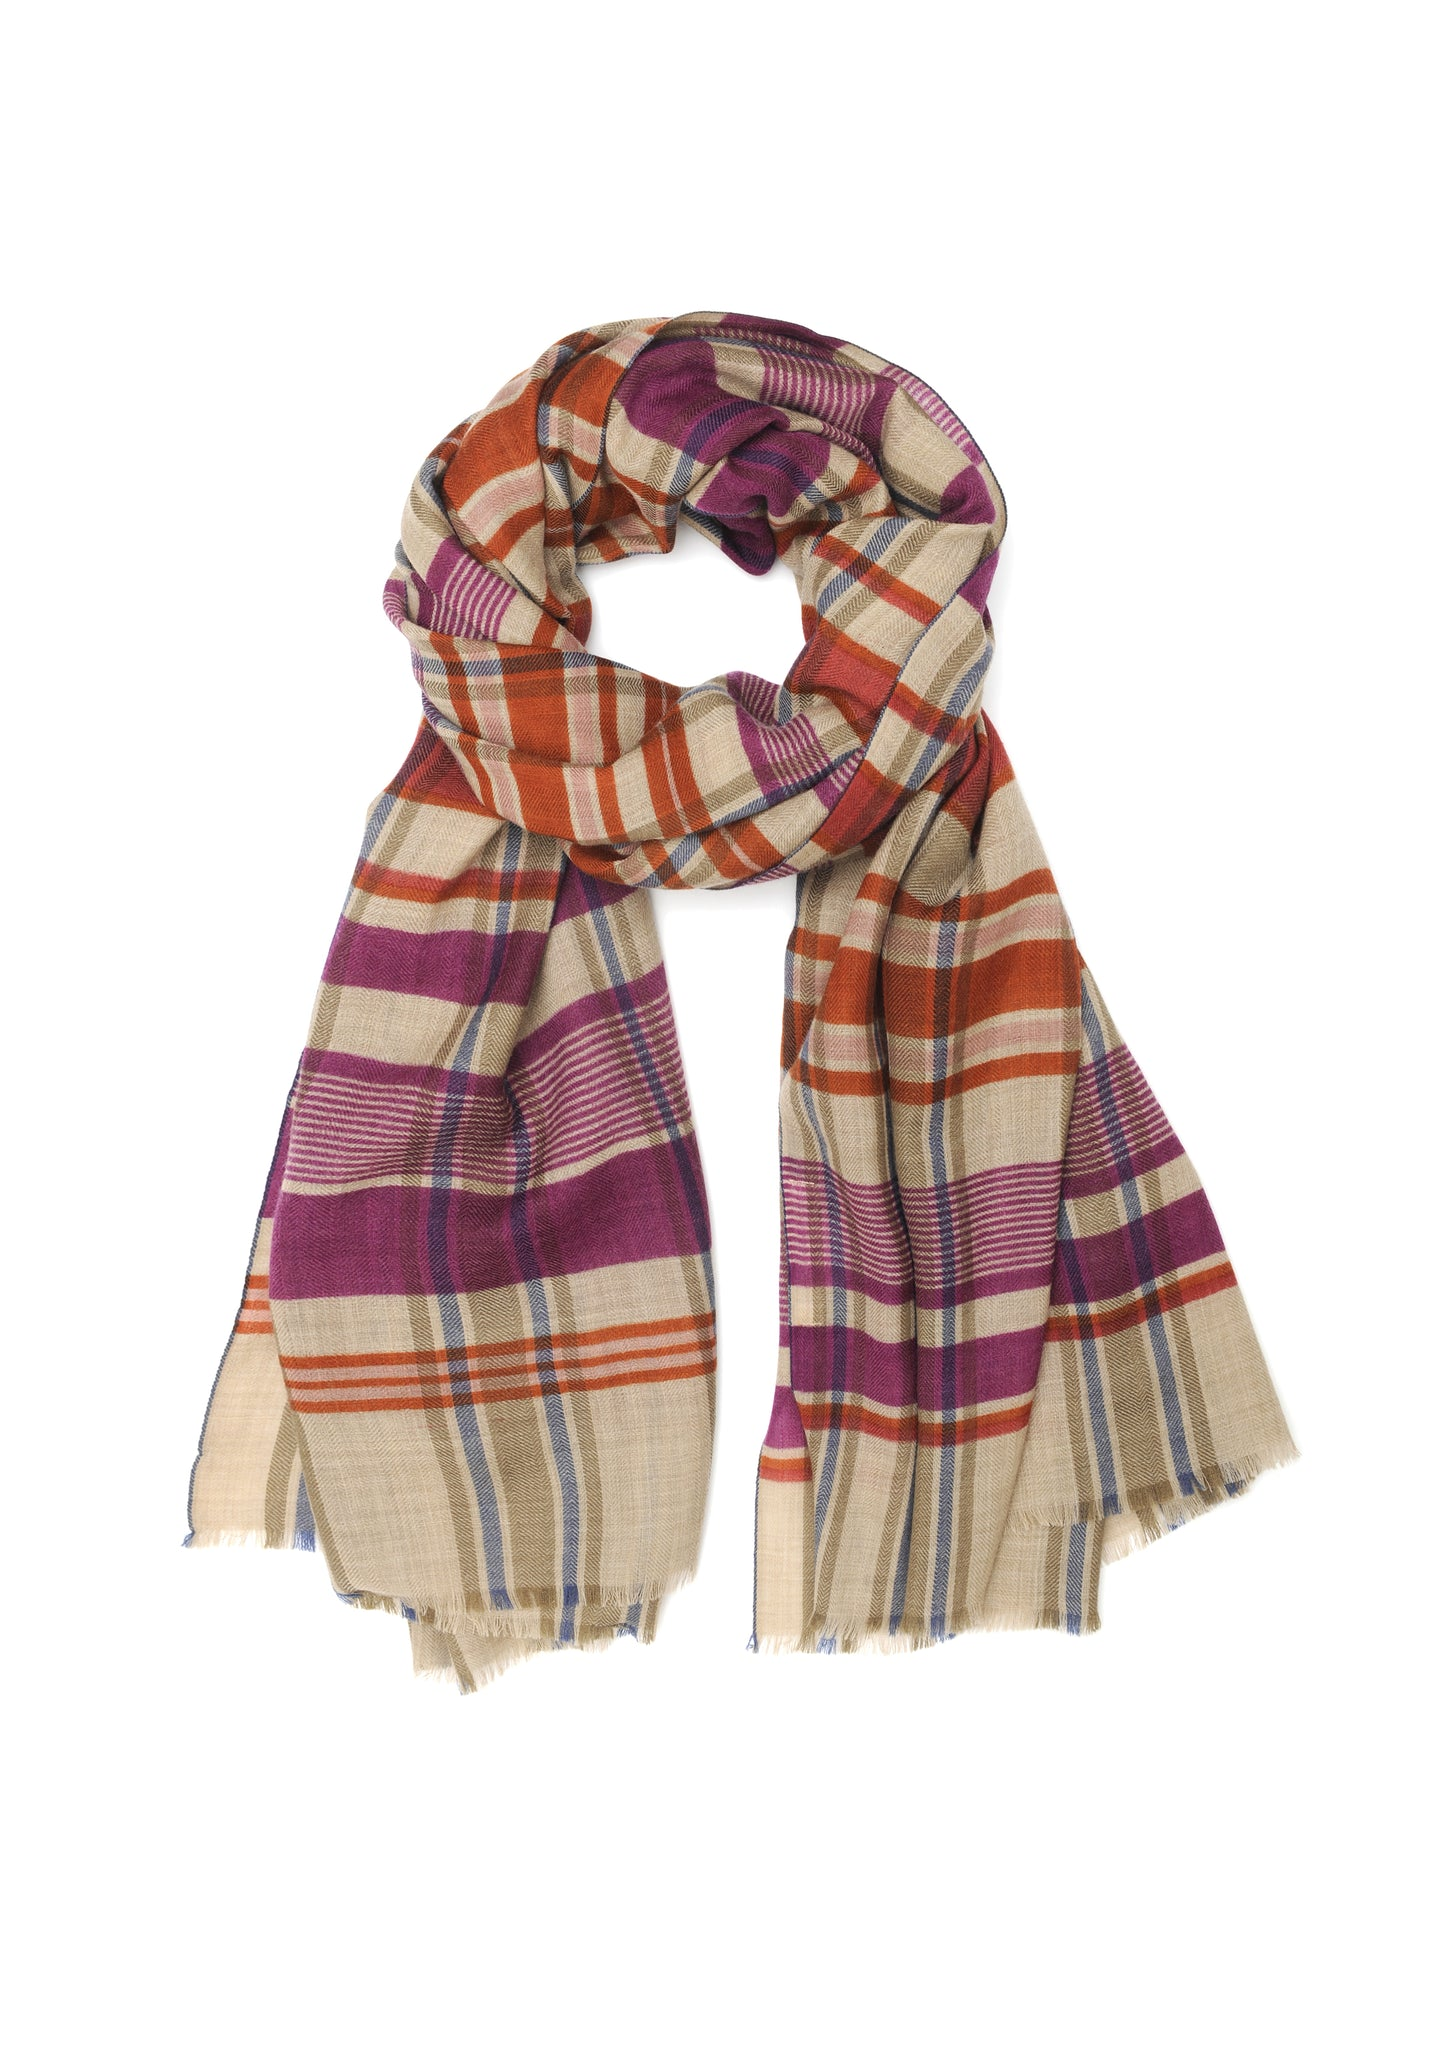 French 100% Wool Scarf - 376, Indian Pink